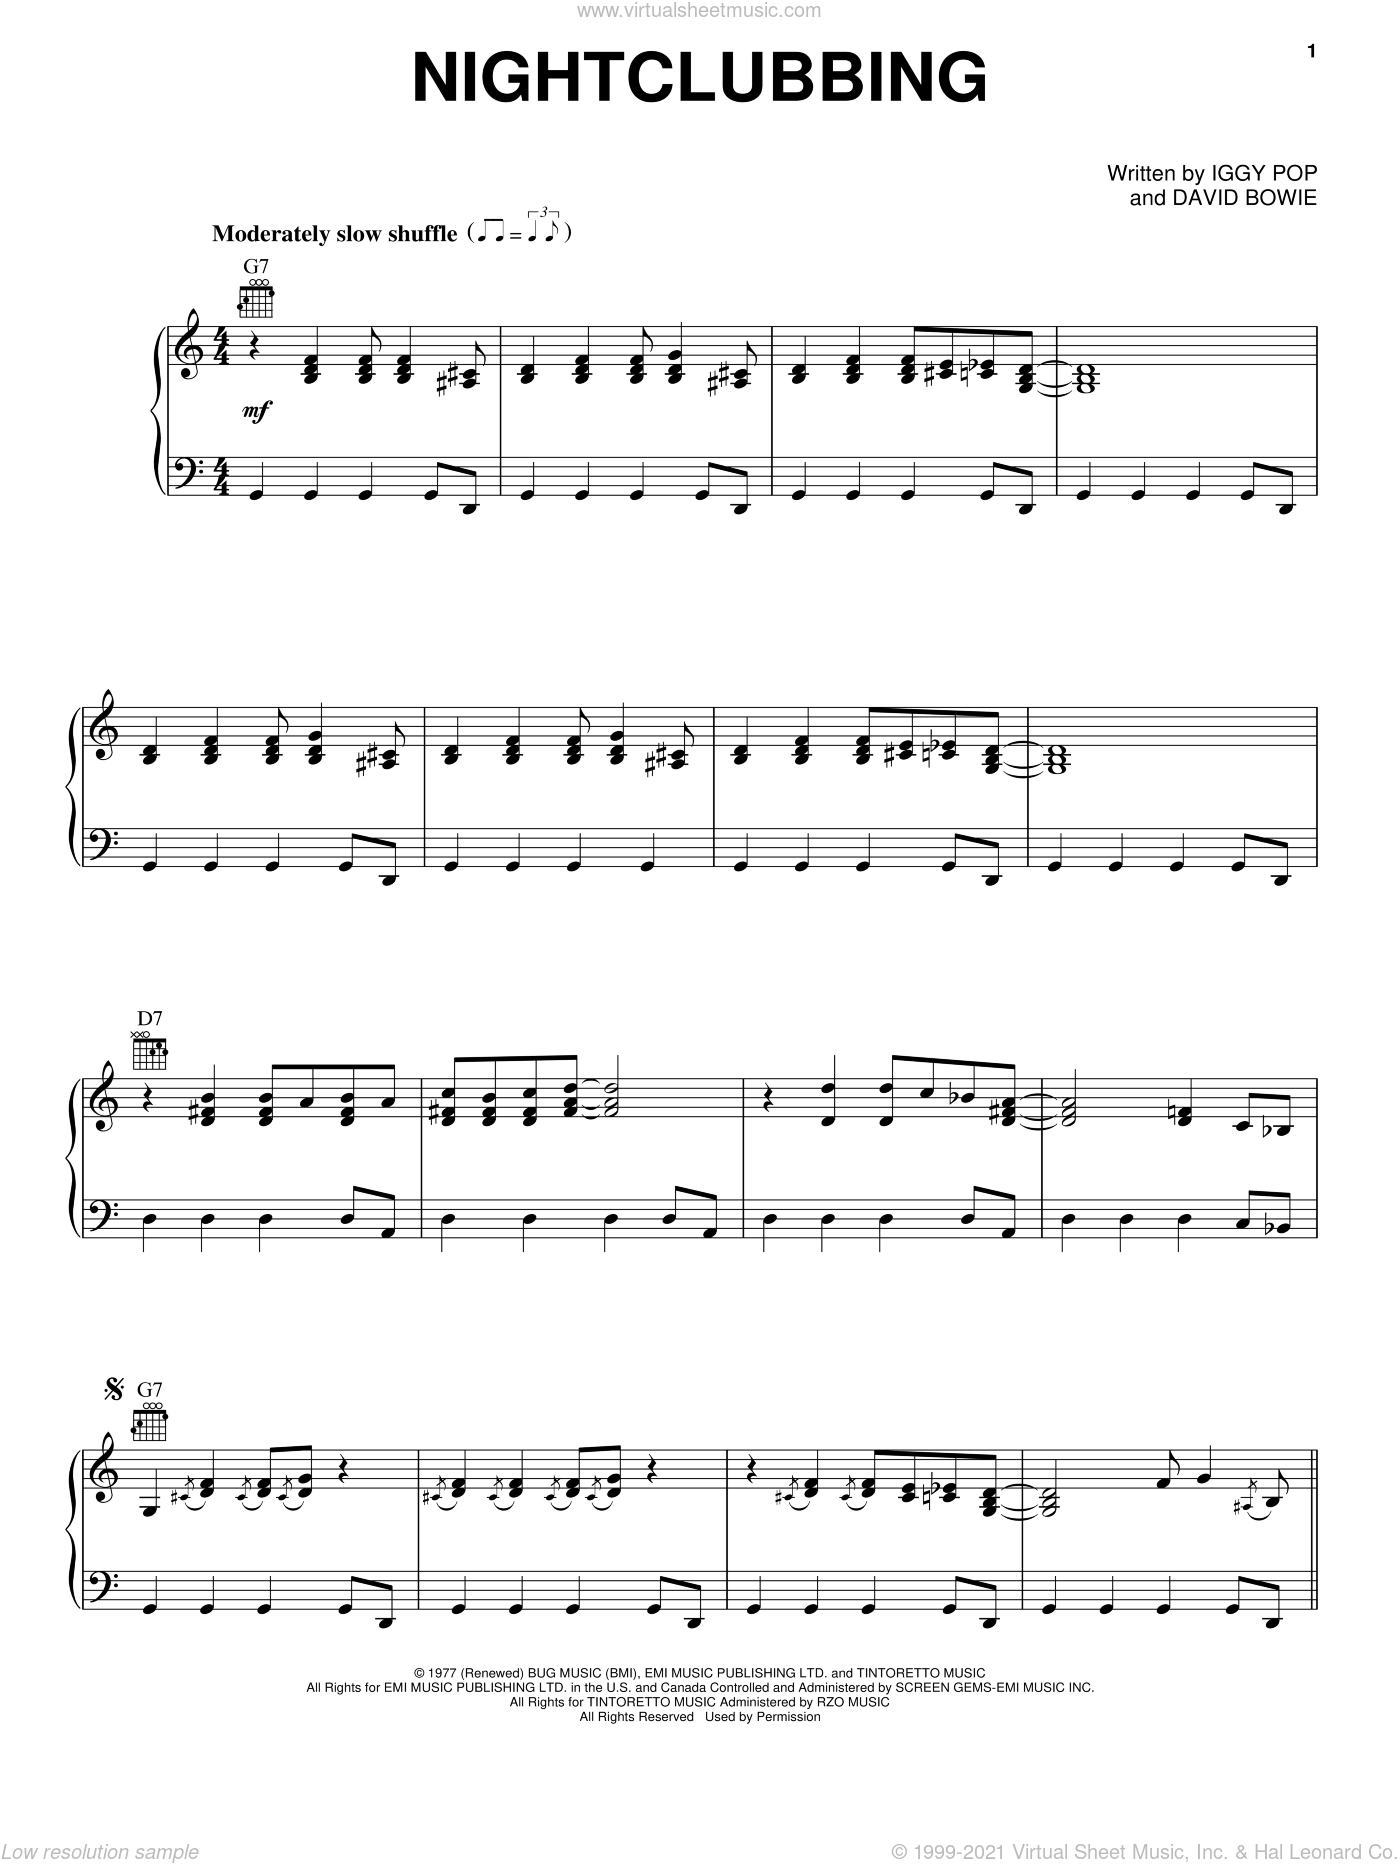 Nightclubbing sheet music for voice, piano or guitar by Iggy Pop, Grace Jones and David Bowie, intermediate skill level